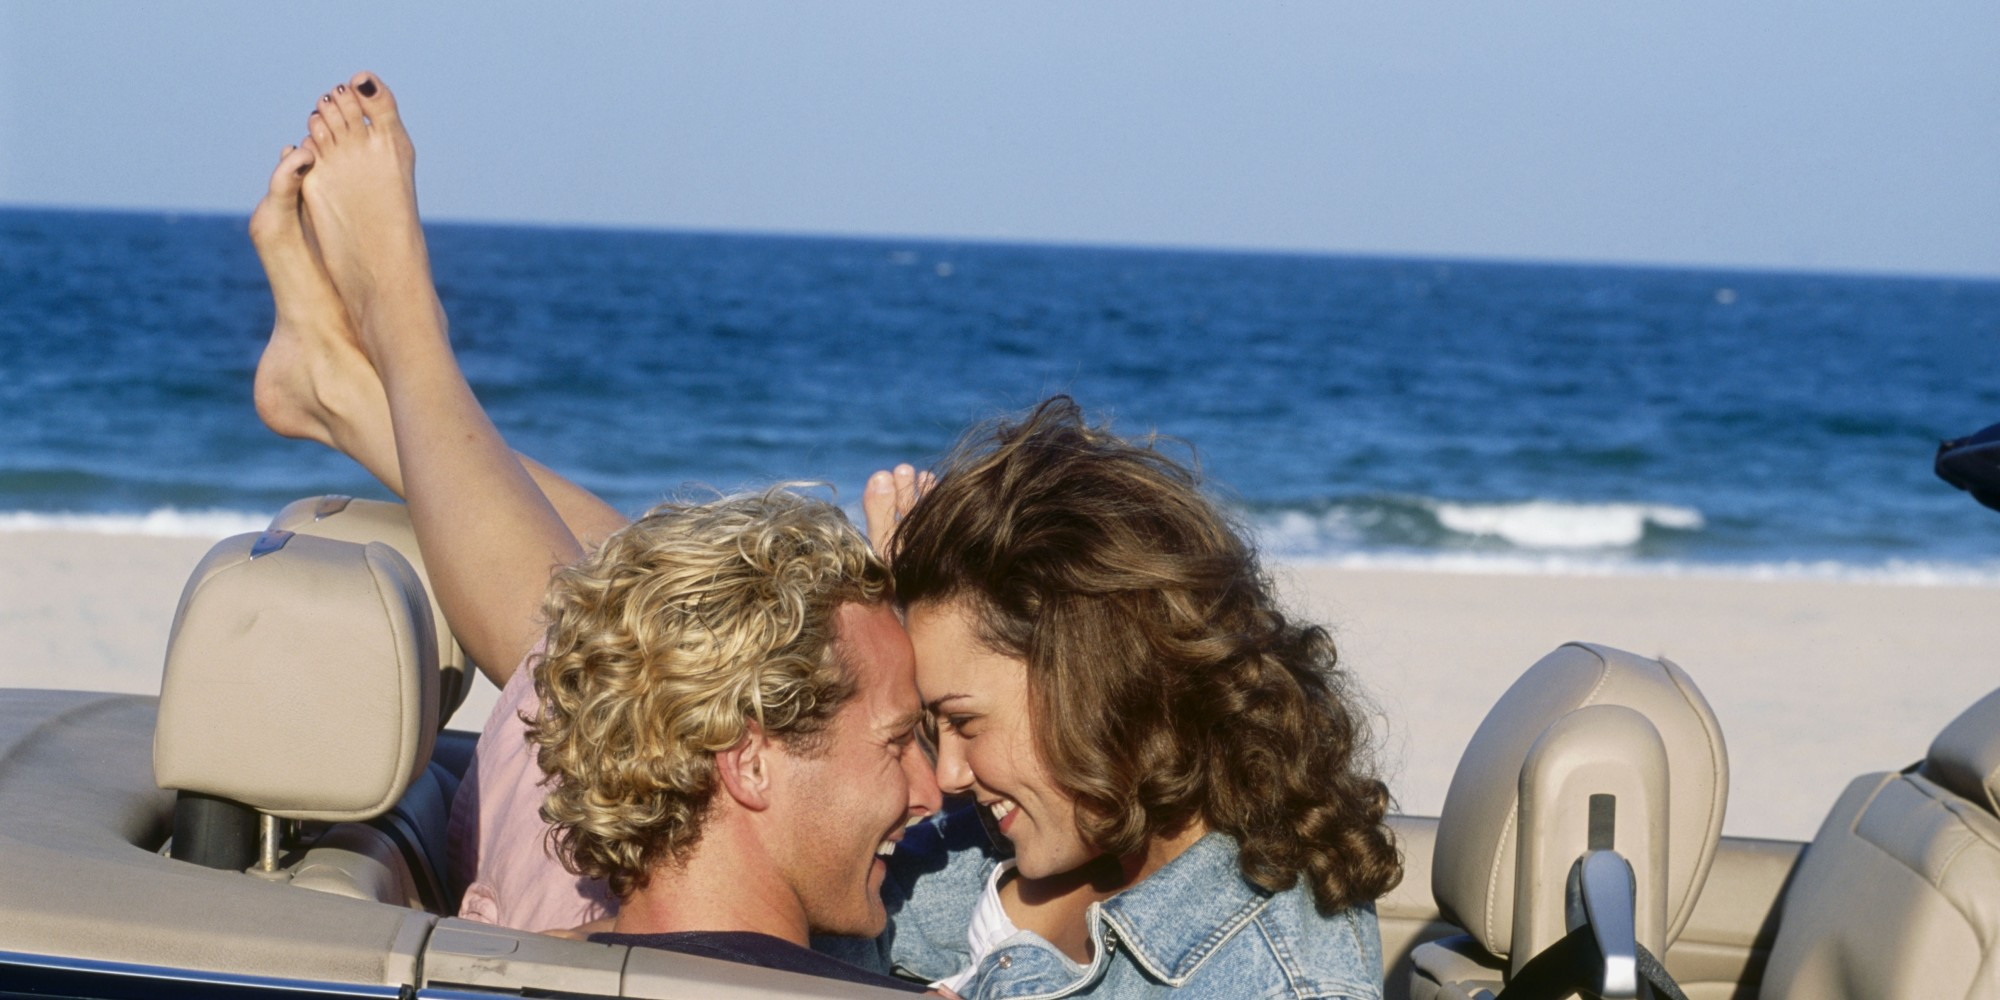 tips for bringing passion back into your relationship huffpost